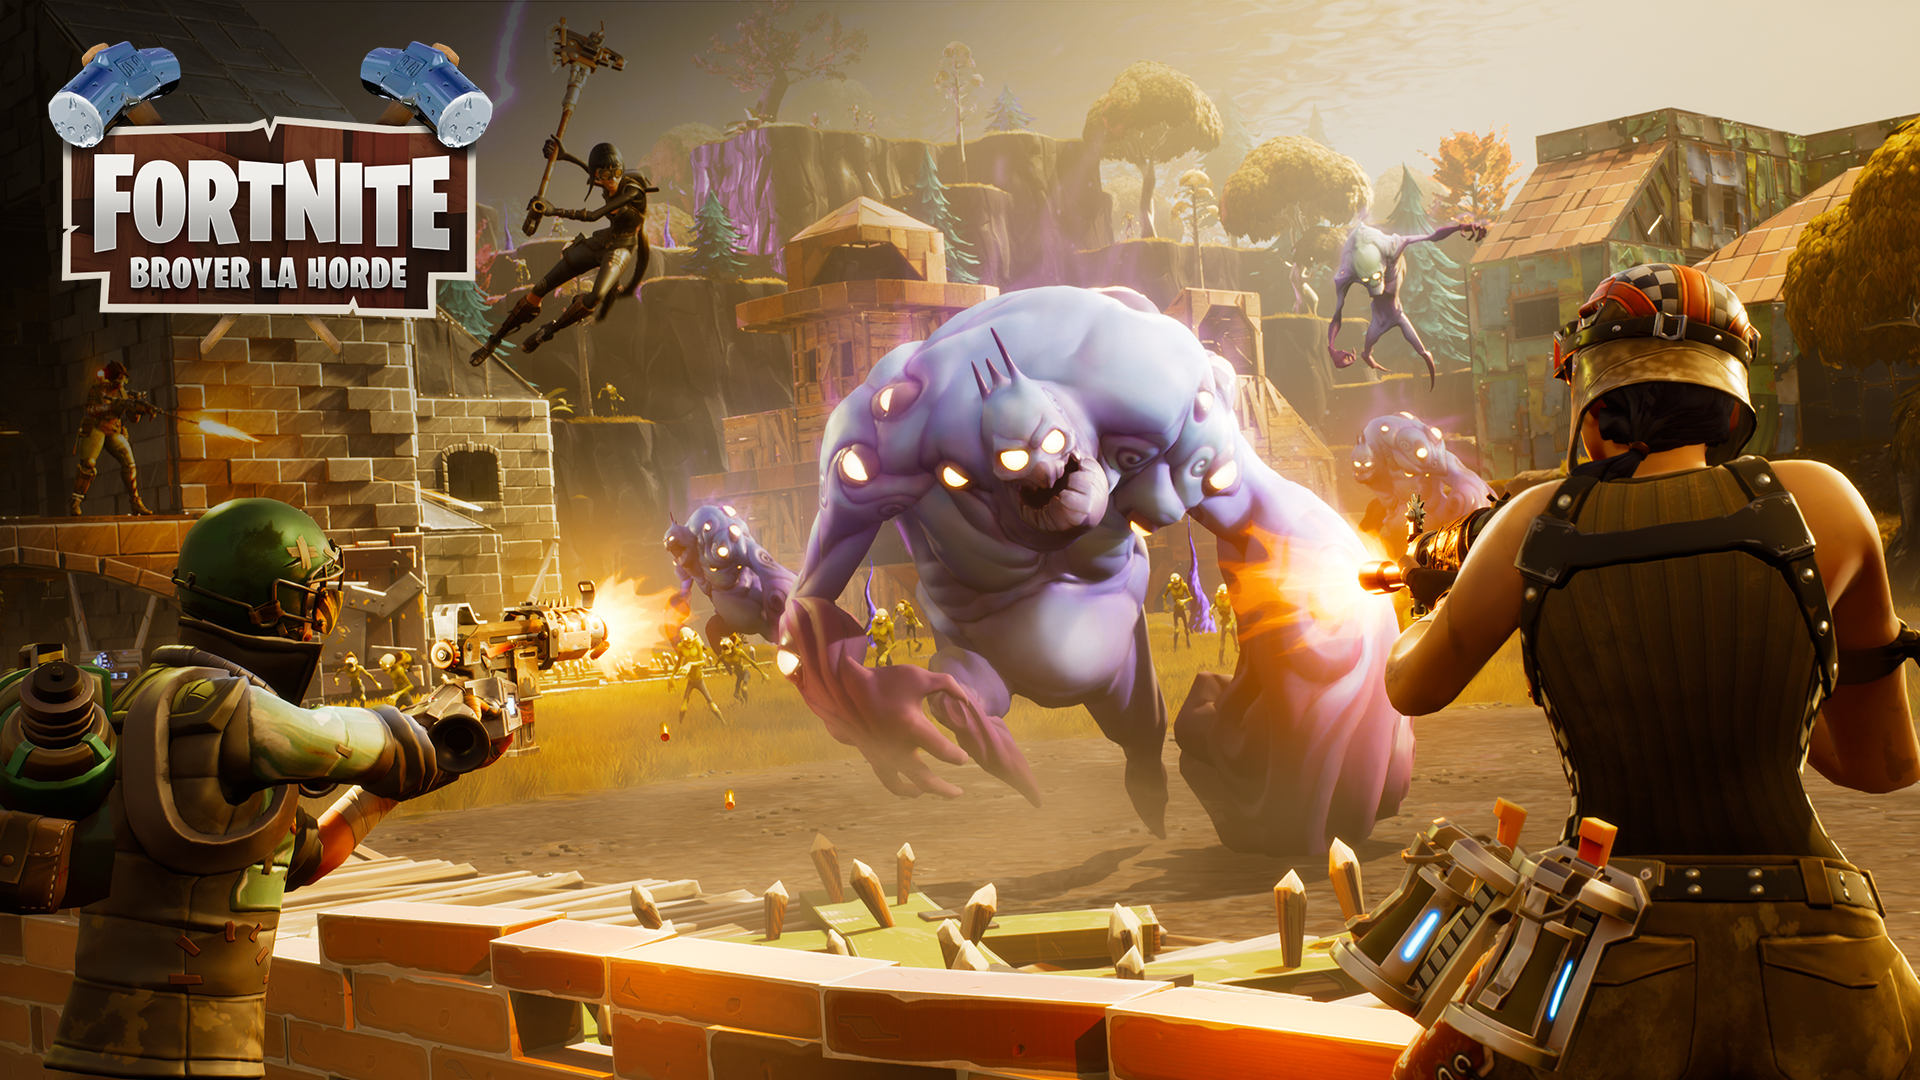 Fortnite%2Fblog%2Fea-1-7-patch-notes%2FFR-HB-GamePlay-1920x1080-1d63621da3adeb60b2bc2d34468db1998c6a123c